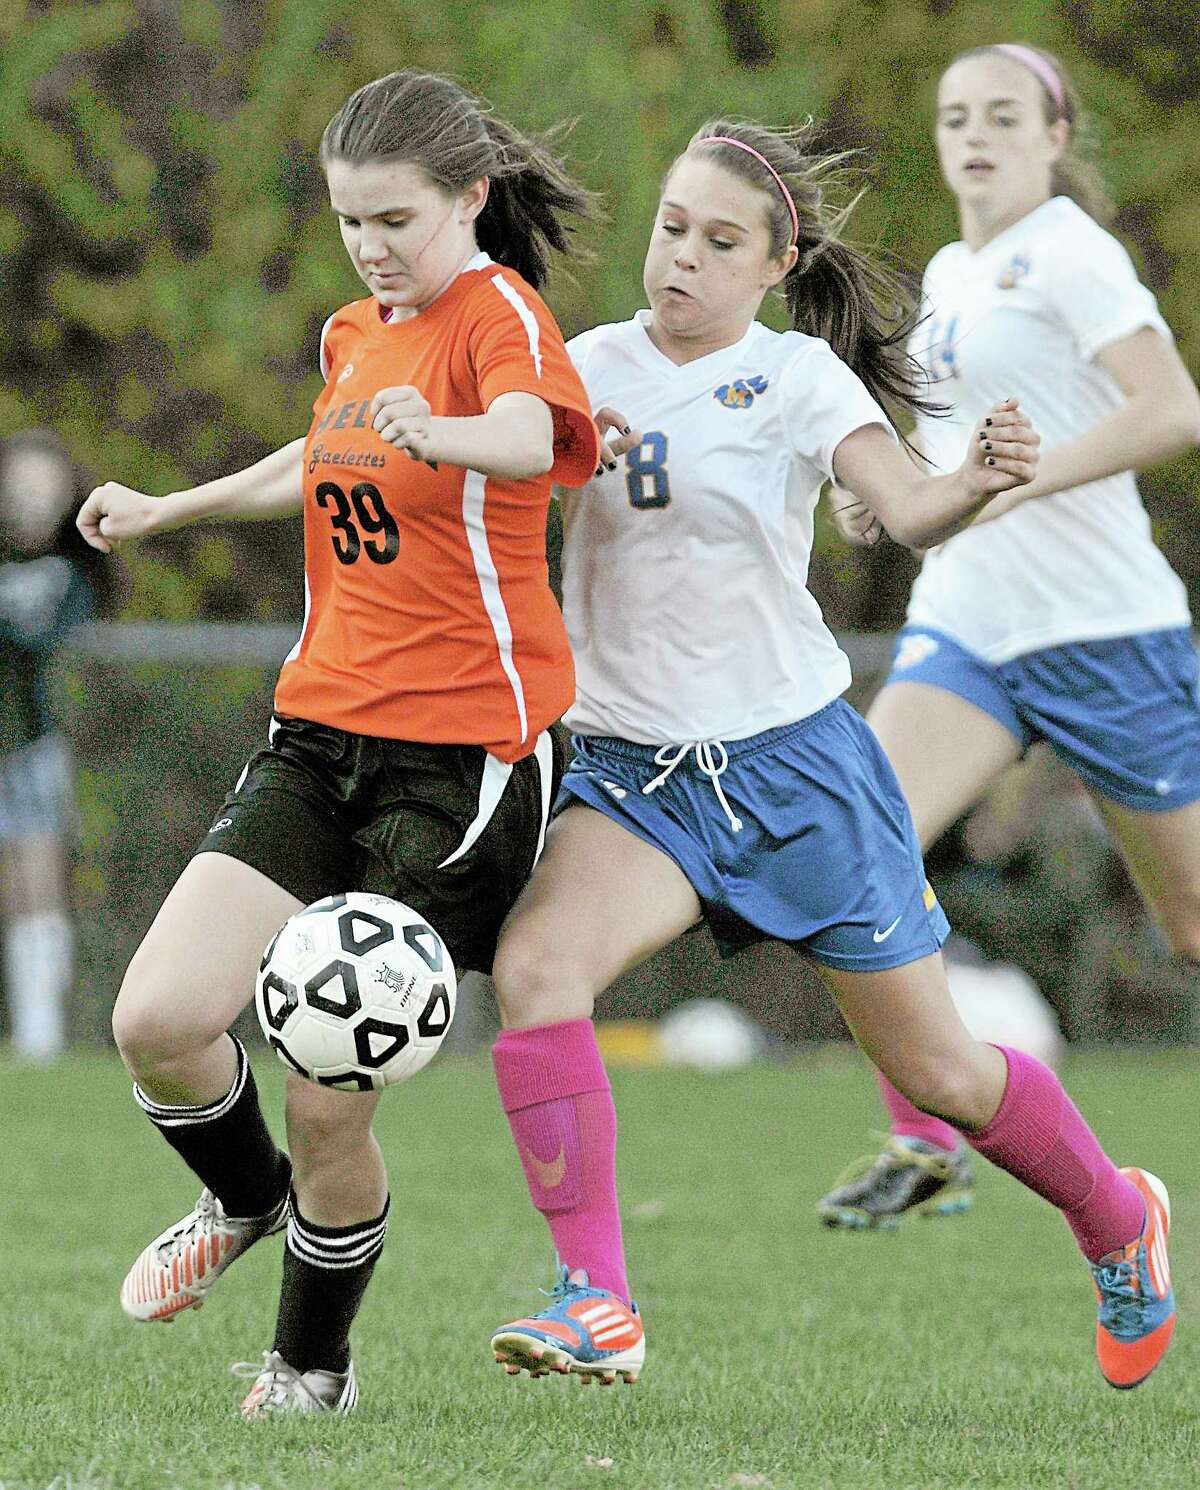 Mercy midfielder Emma Thomas and Shelton's Jillian Engeldrum compete for a loose ball near the Gaels goal Monday afternoon in Middletown. The Mercy Tigers won 6-1.